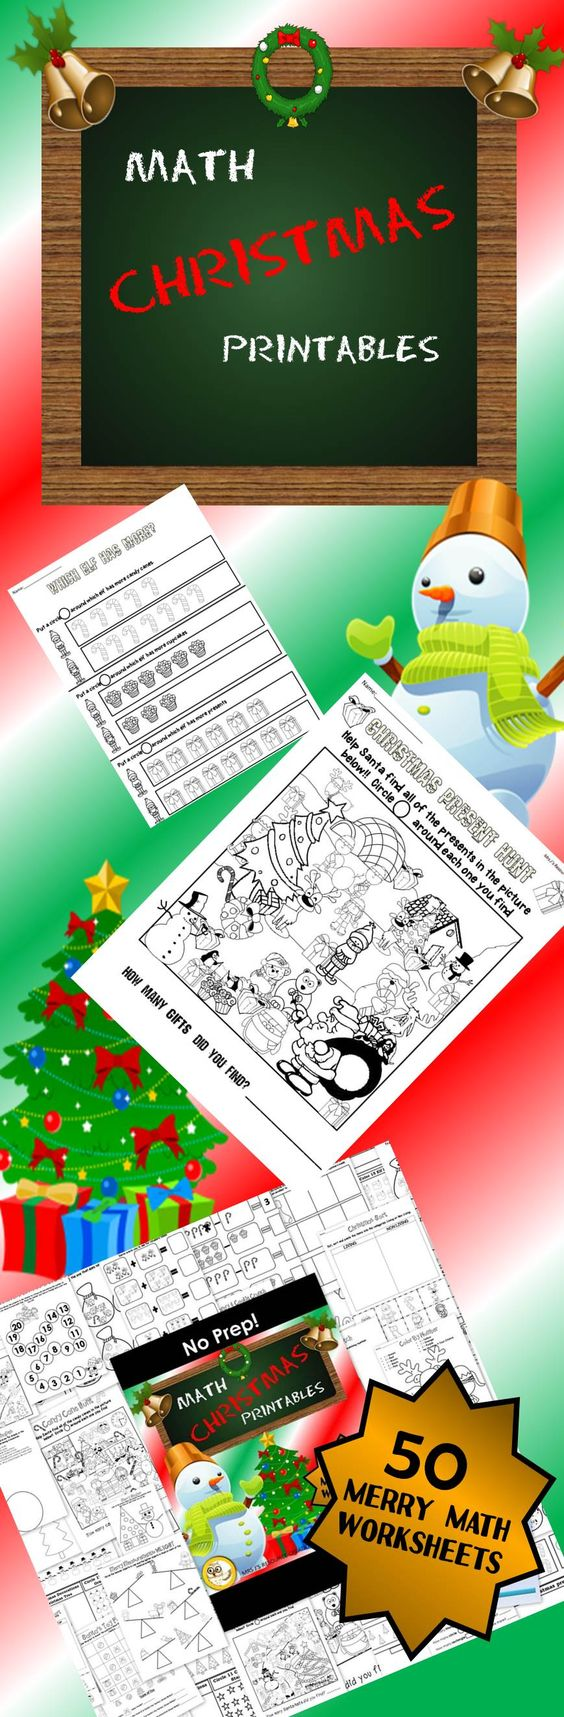 Christmas themed math worksheets for grades K-1!! NO PREP just print and go!